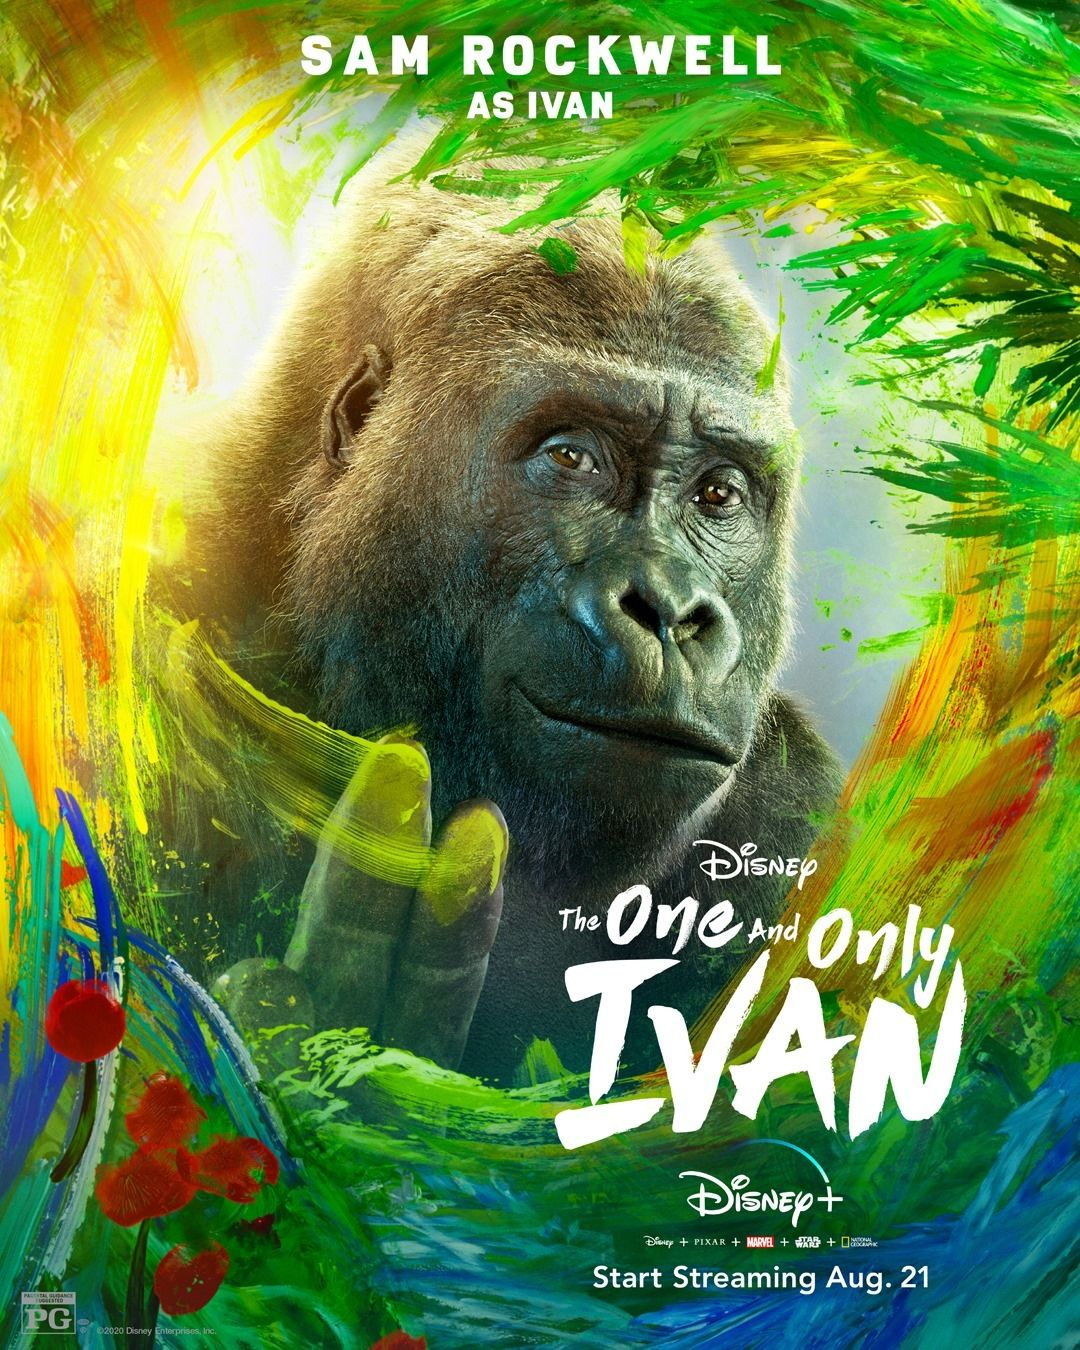 The One and Only Ivan Poster 12